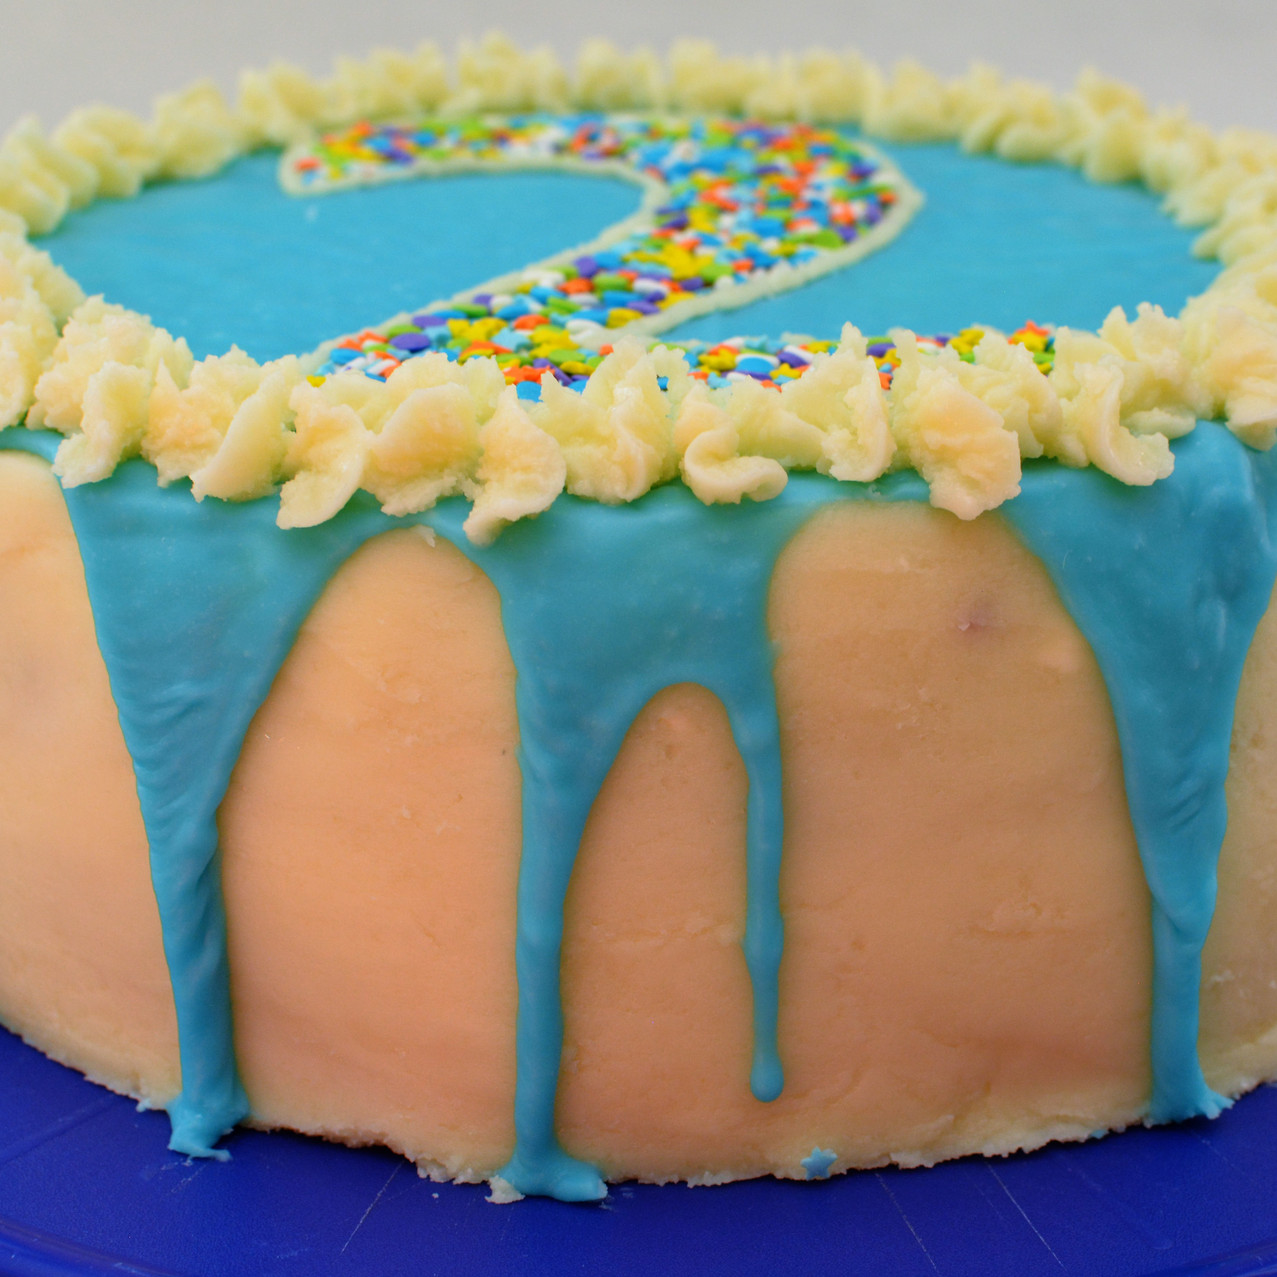 Blue Colored White Chocolate Ganache for Double Layer Funfetti Cake with Buttercream Frosting